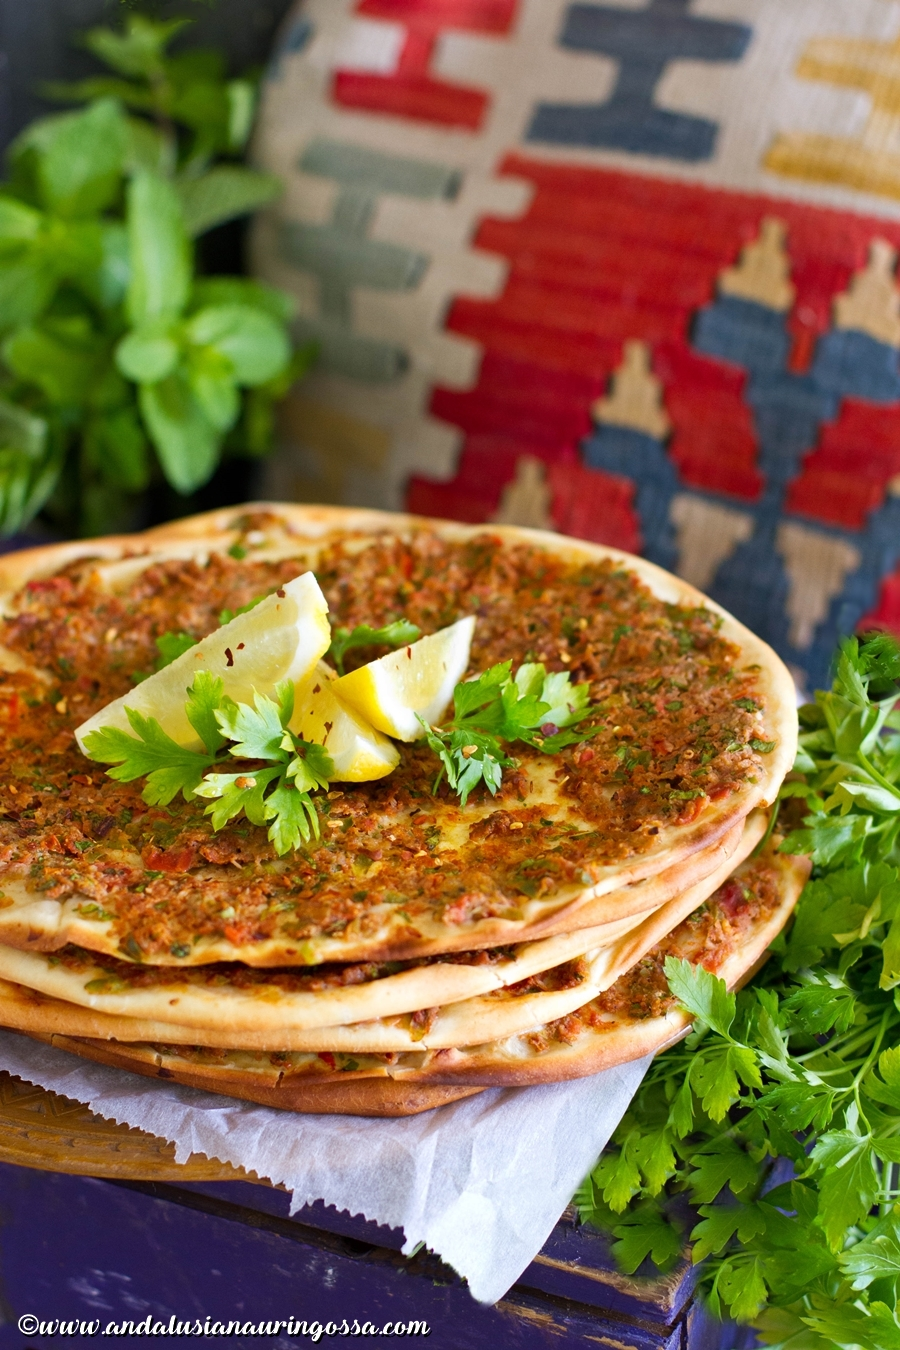 Lahmacun_Turkish pizza_turkish street food_recipe_kosher_glutenfree_Under the Andalusian Sun_foodblog_travelblog_4